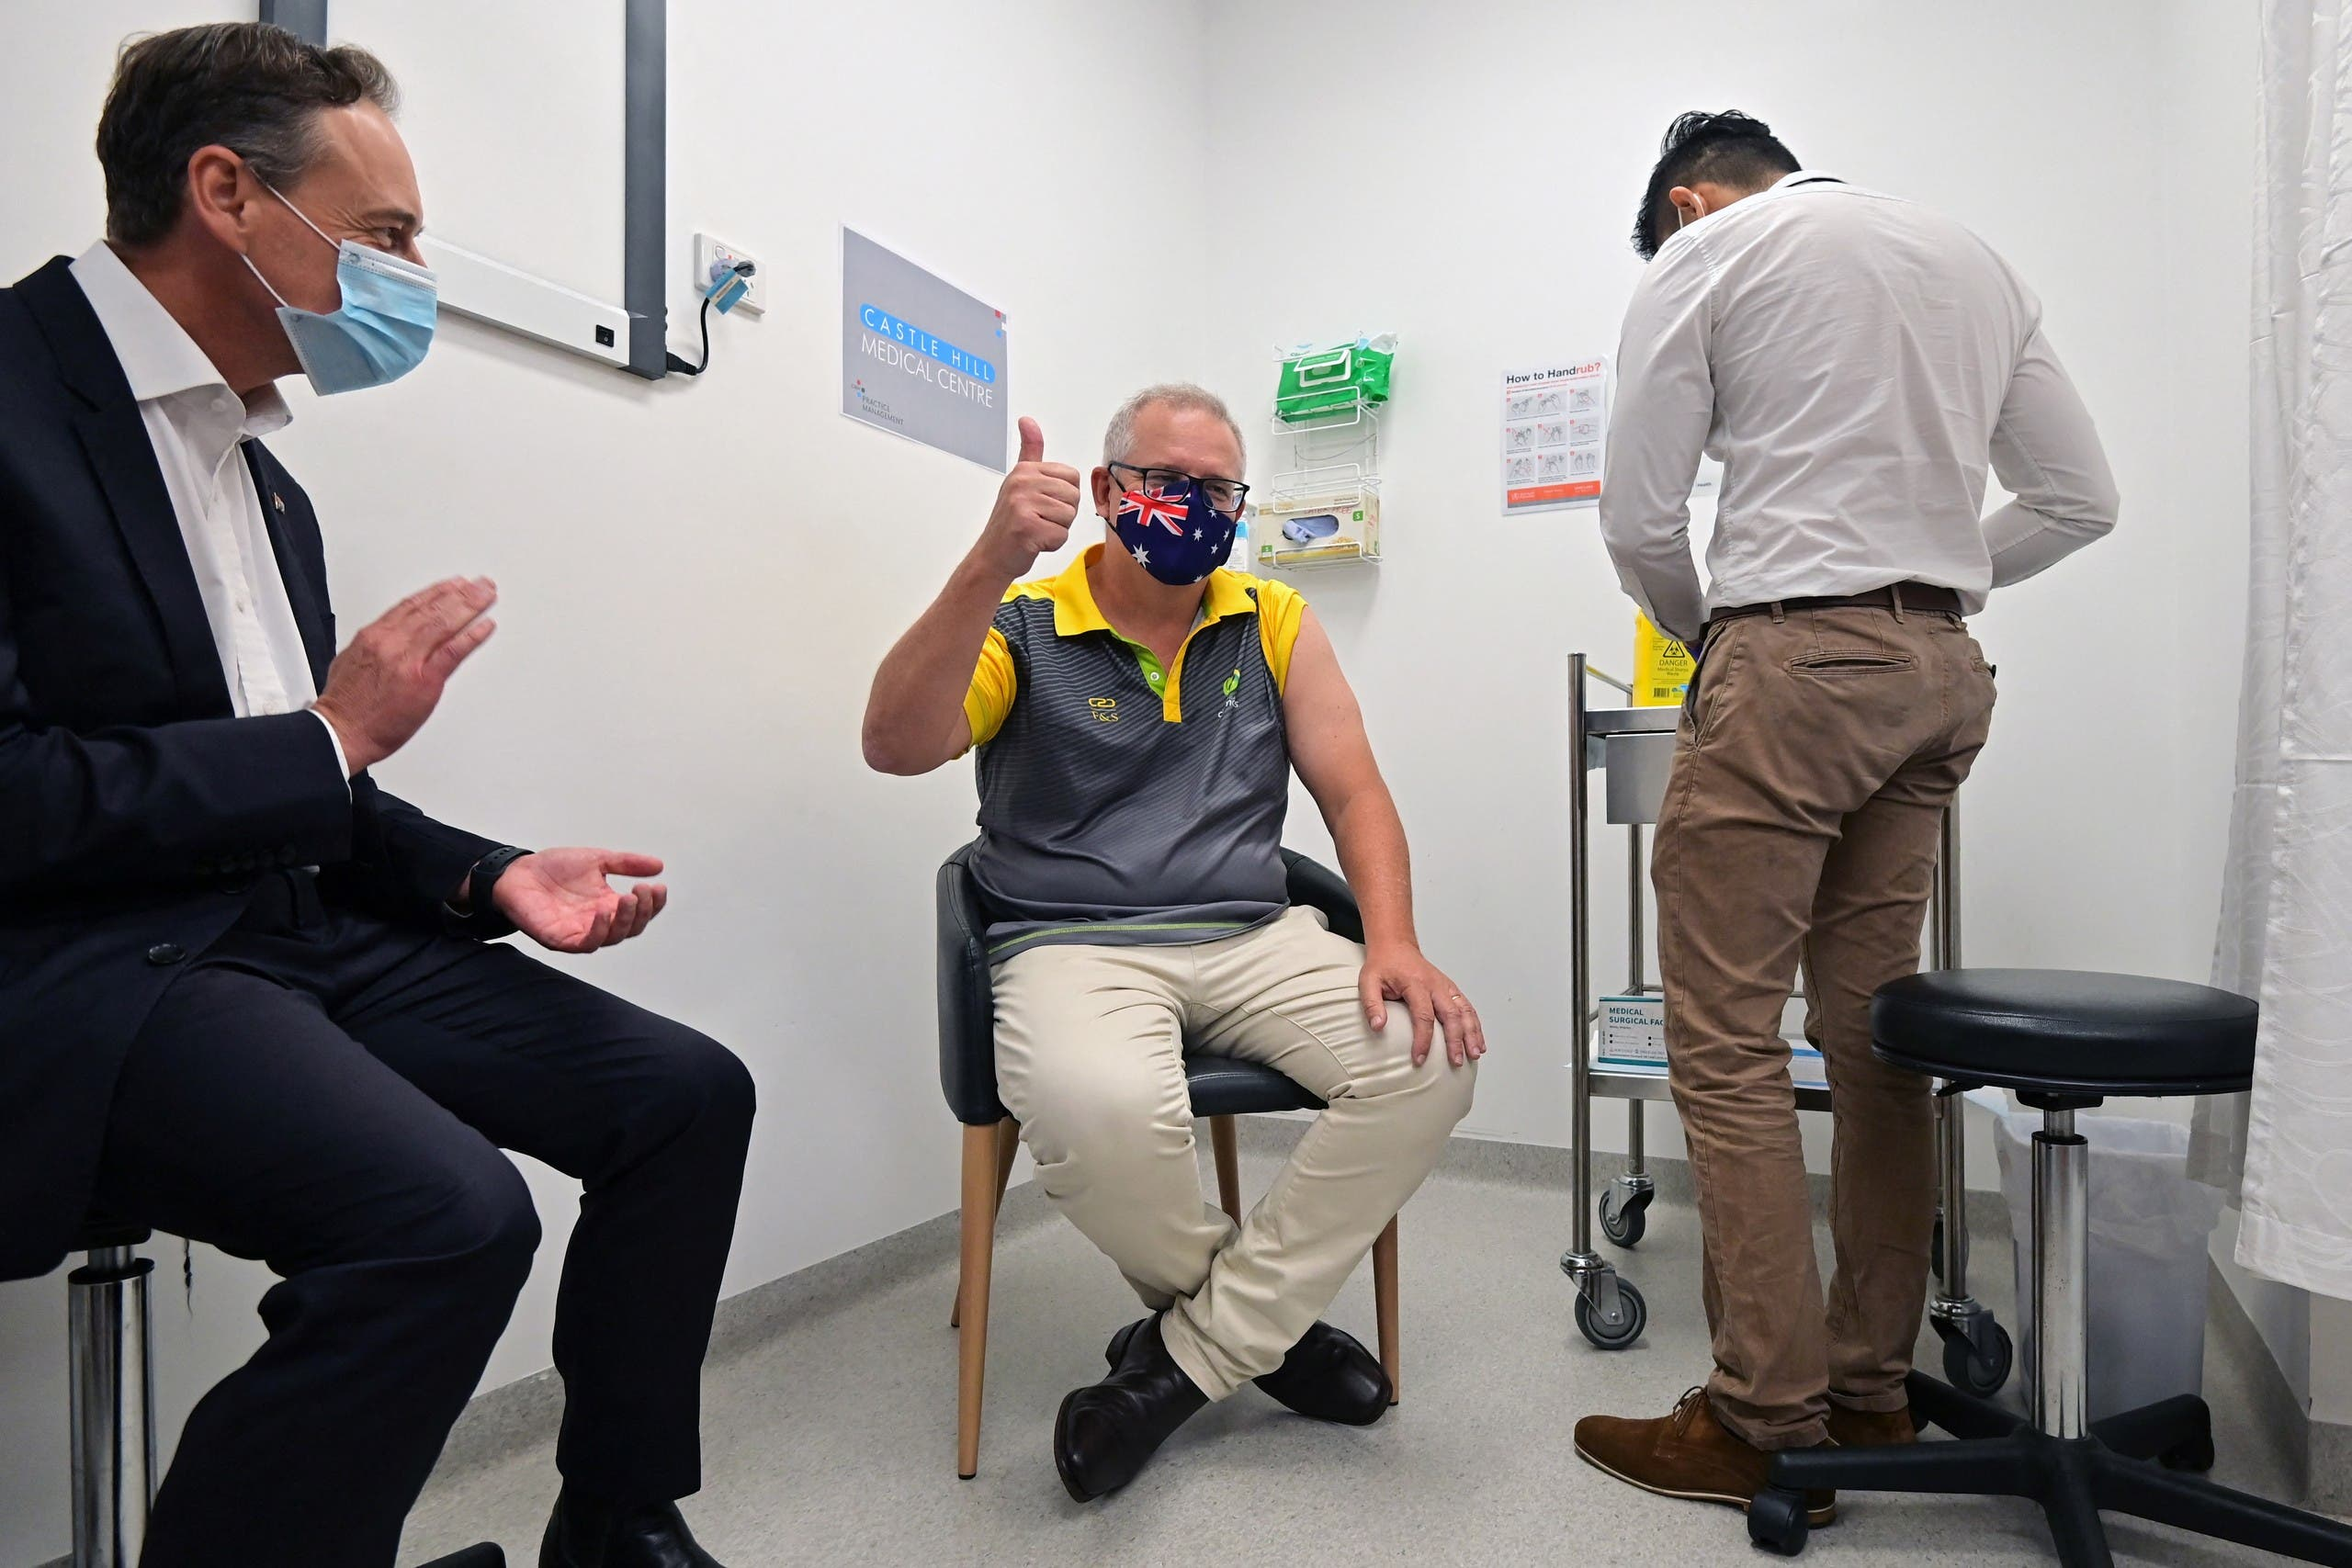 Australia's Prime Minister Scott Morrison reacts after receiving a dose of the Pfizer/BioNTech Covid-19 vaccine, as Minister for Health Greg Hunt (L) looks on, at the Castle Hill Medical Centre in Sydney on February 21, 2021.